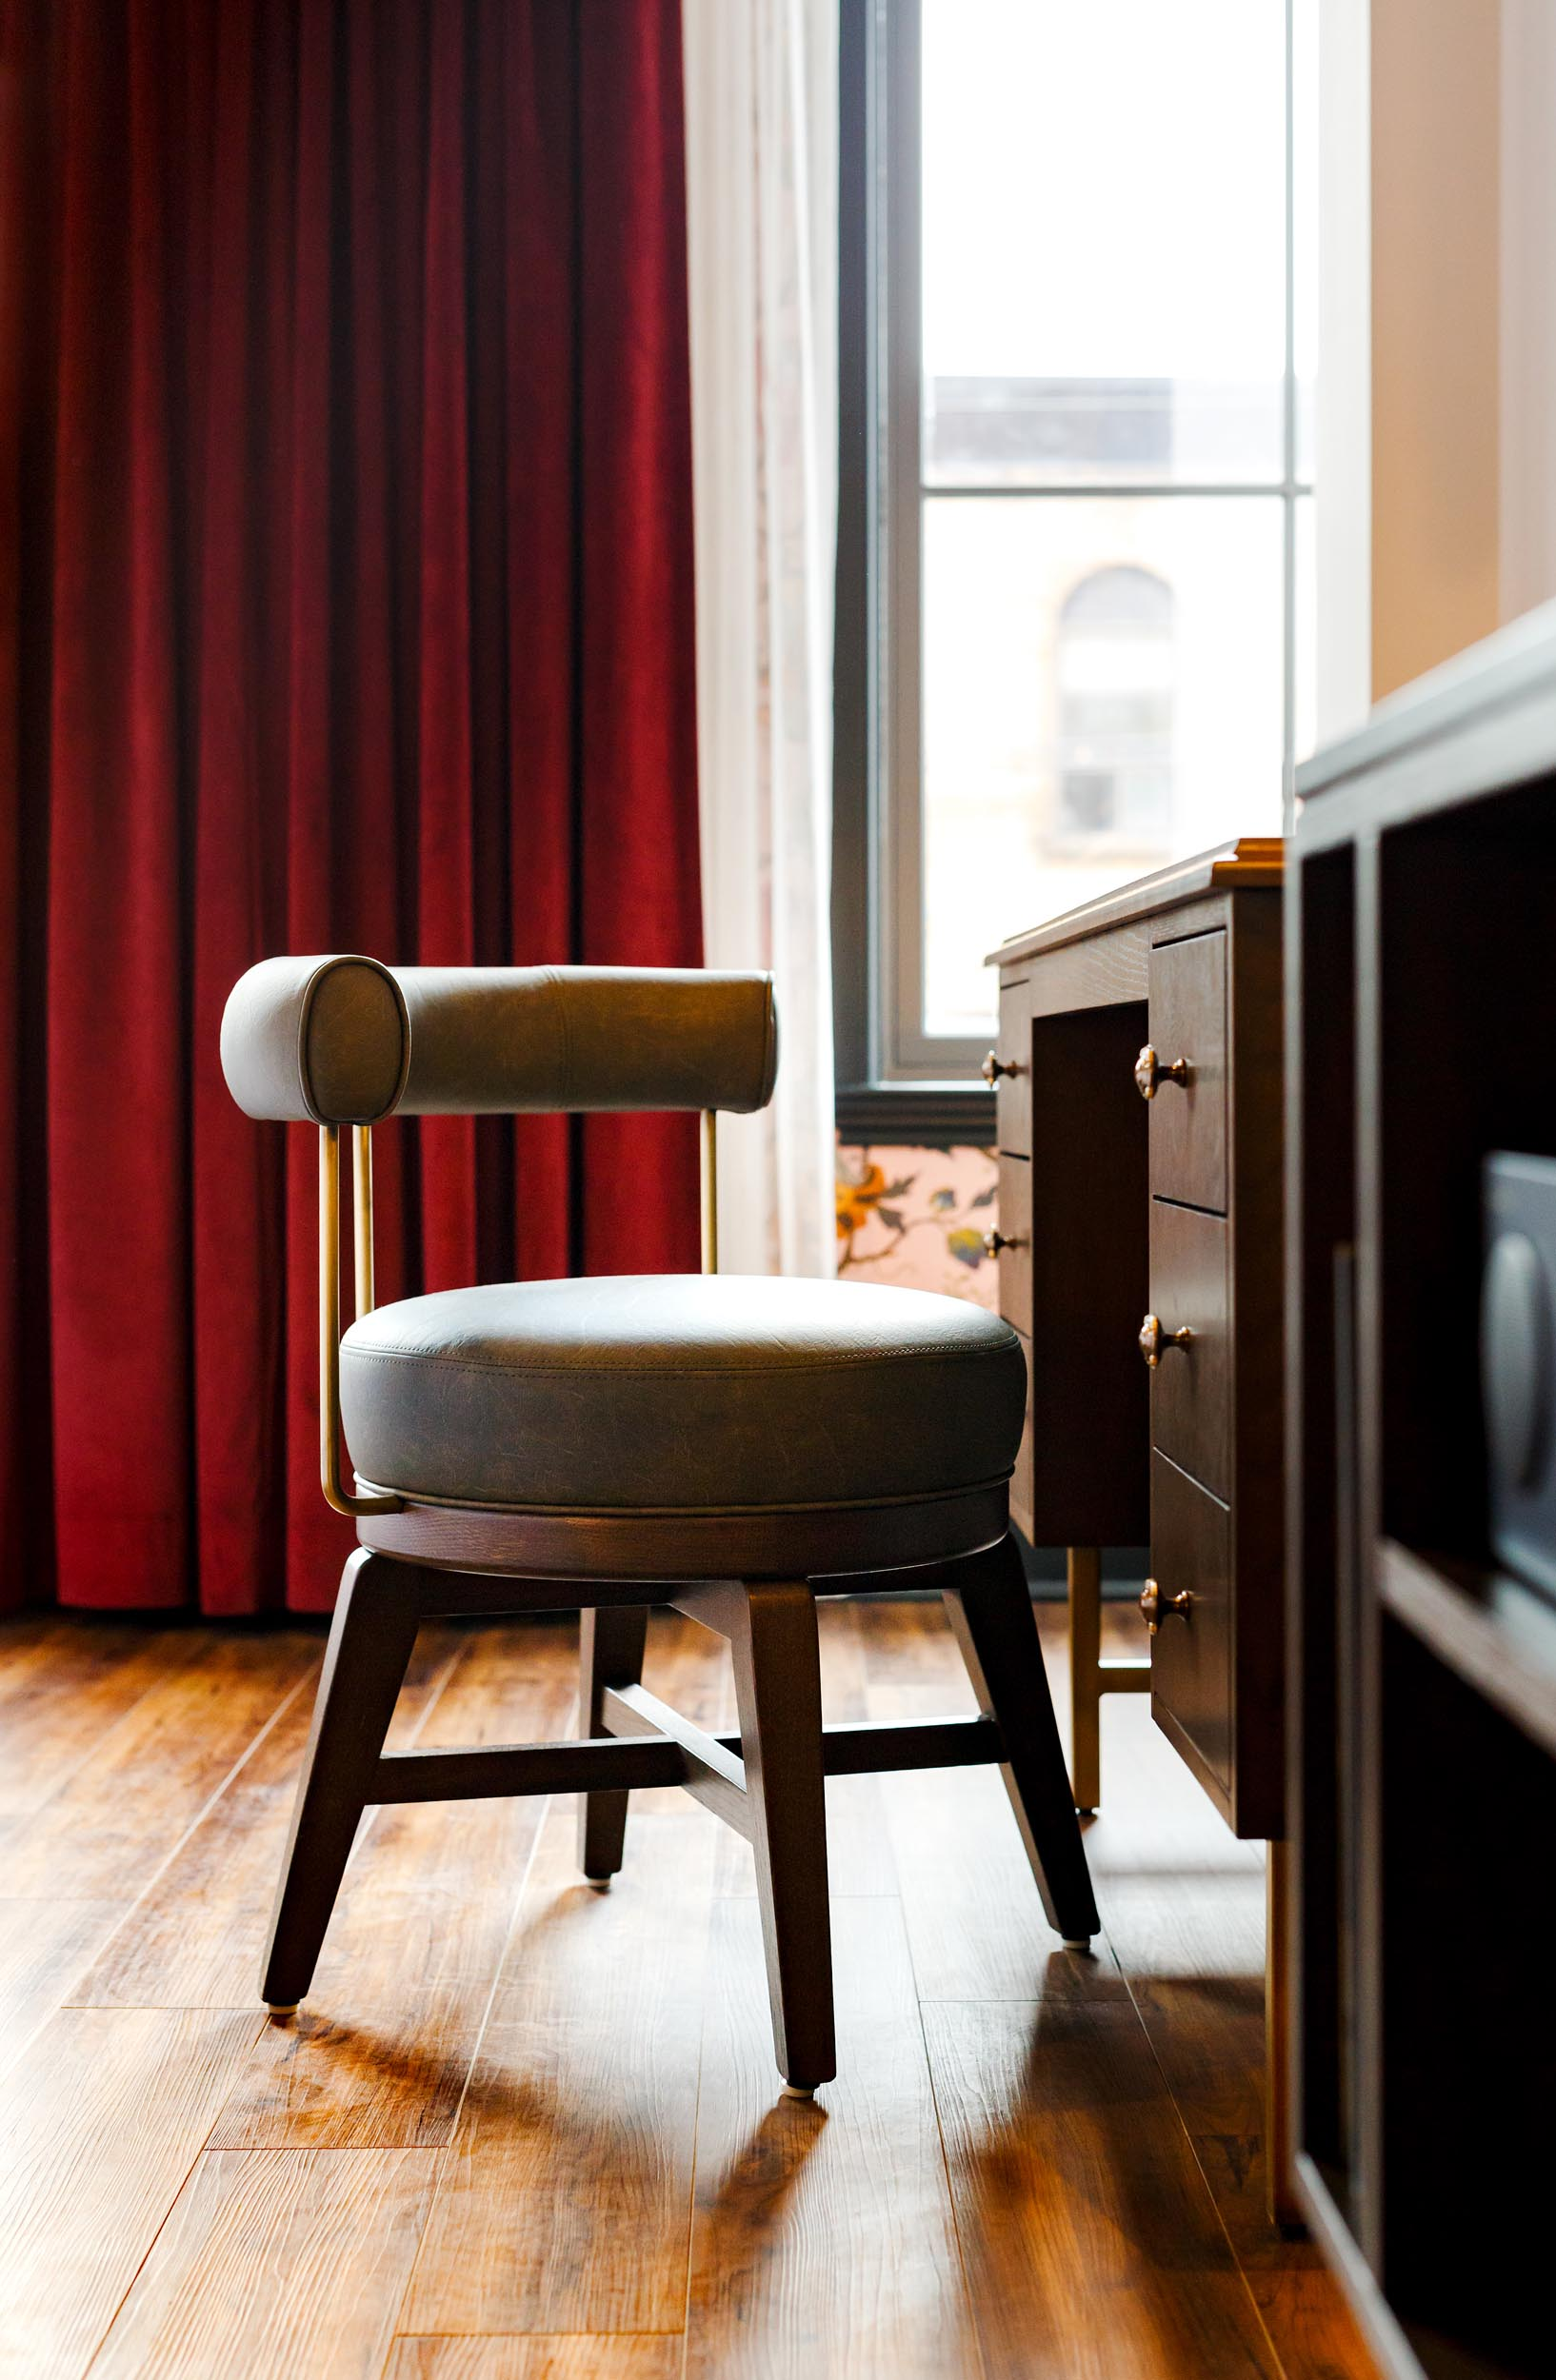 Modern Furniture Interior Photos of Broadview Hotel by Worker Bee Supply